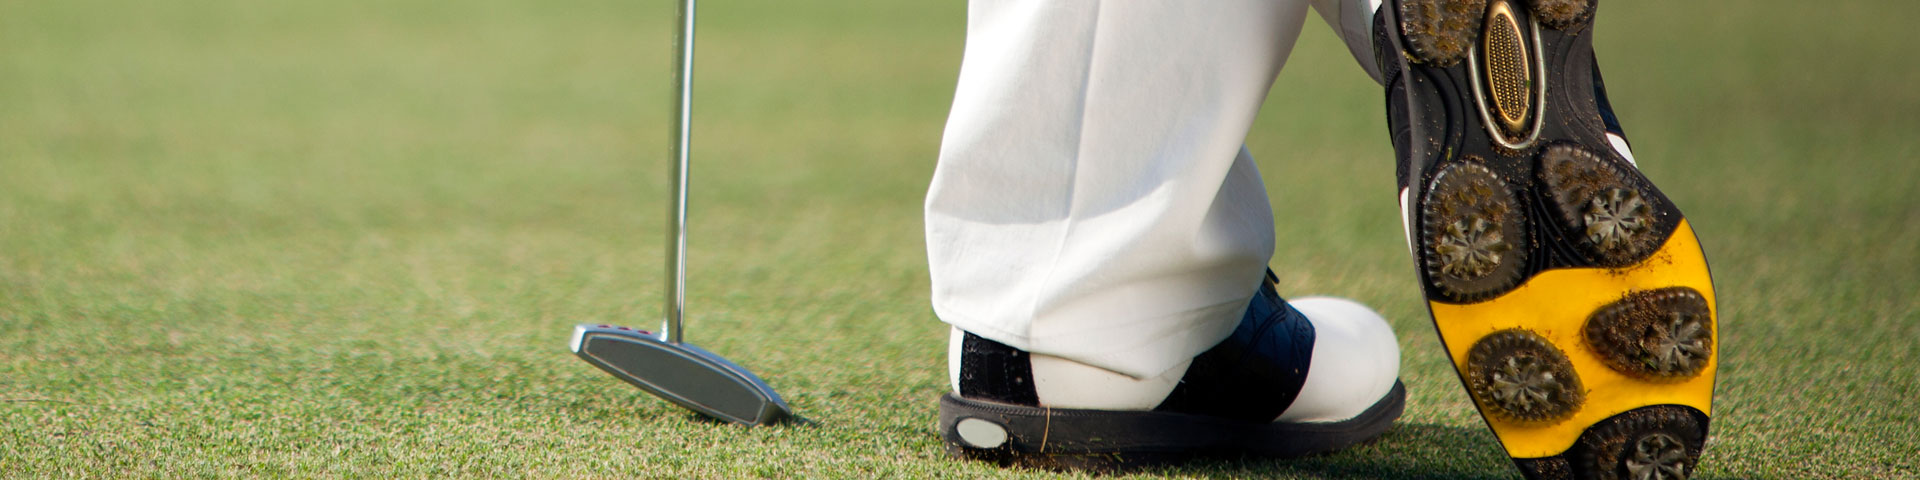 A person's golf shoes accompanied by a club